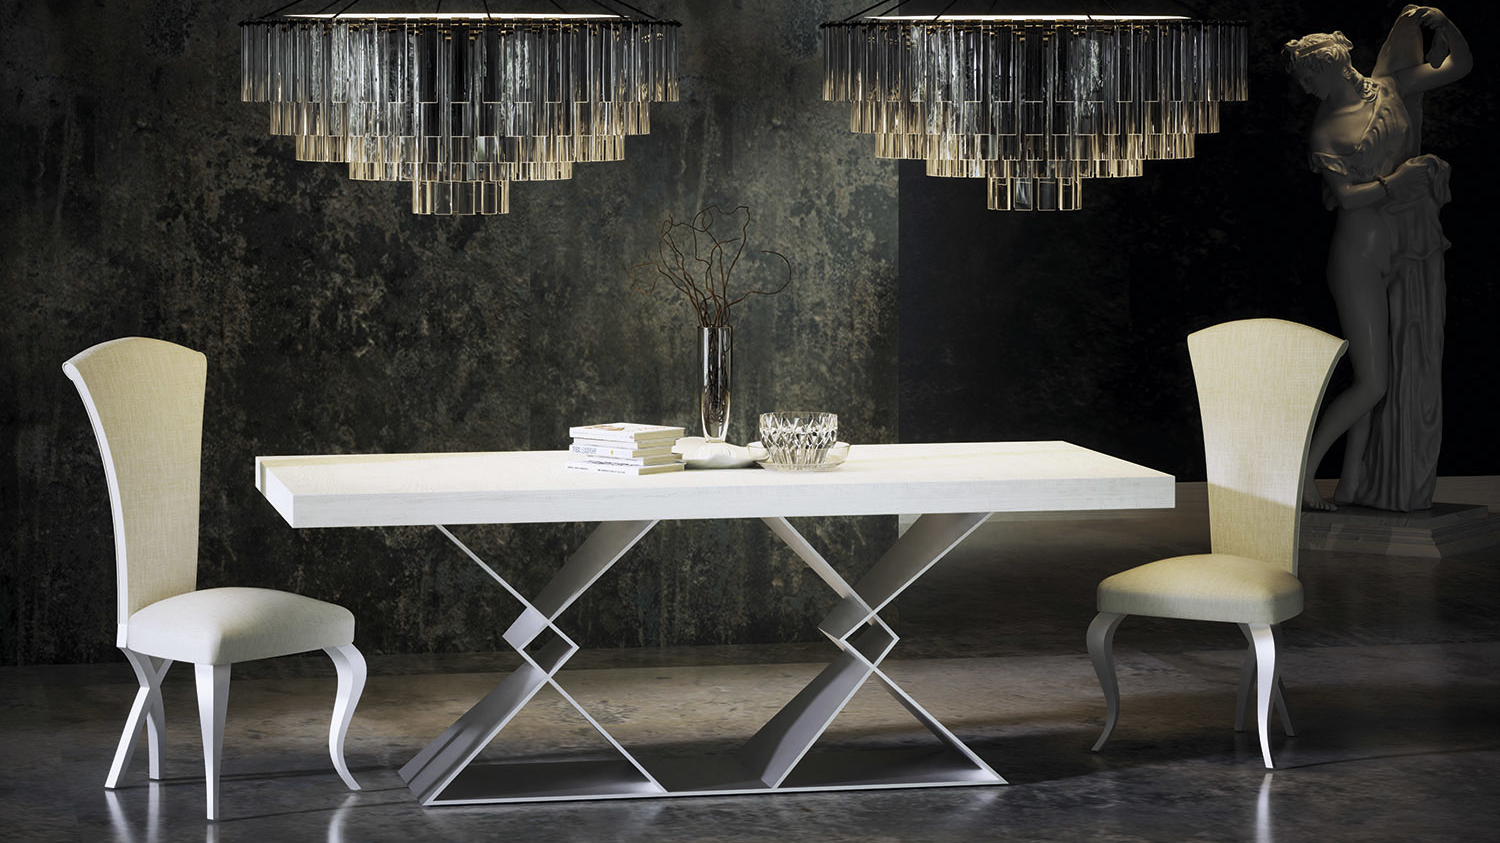 Decovarte tables and chairs